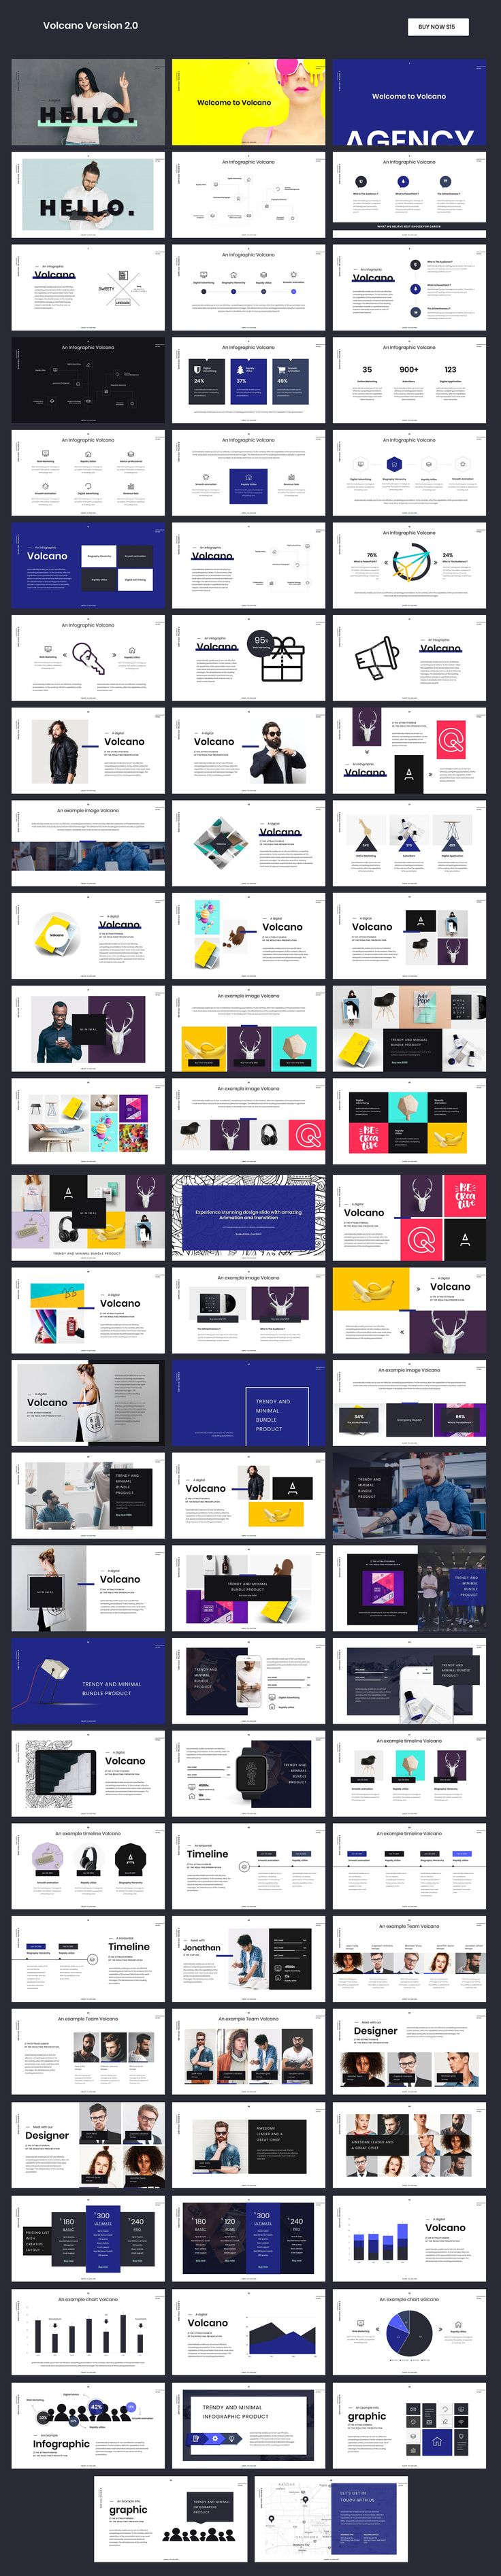 Modern Powerpoint Template #presentation #ppt #colorful